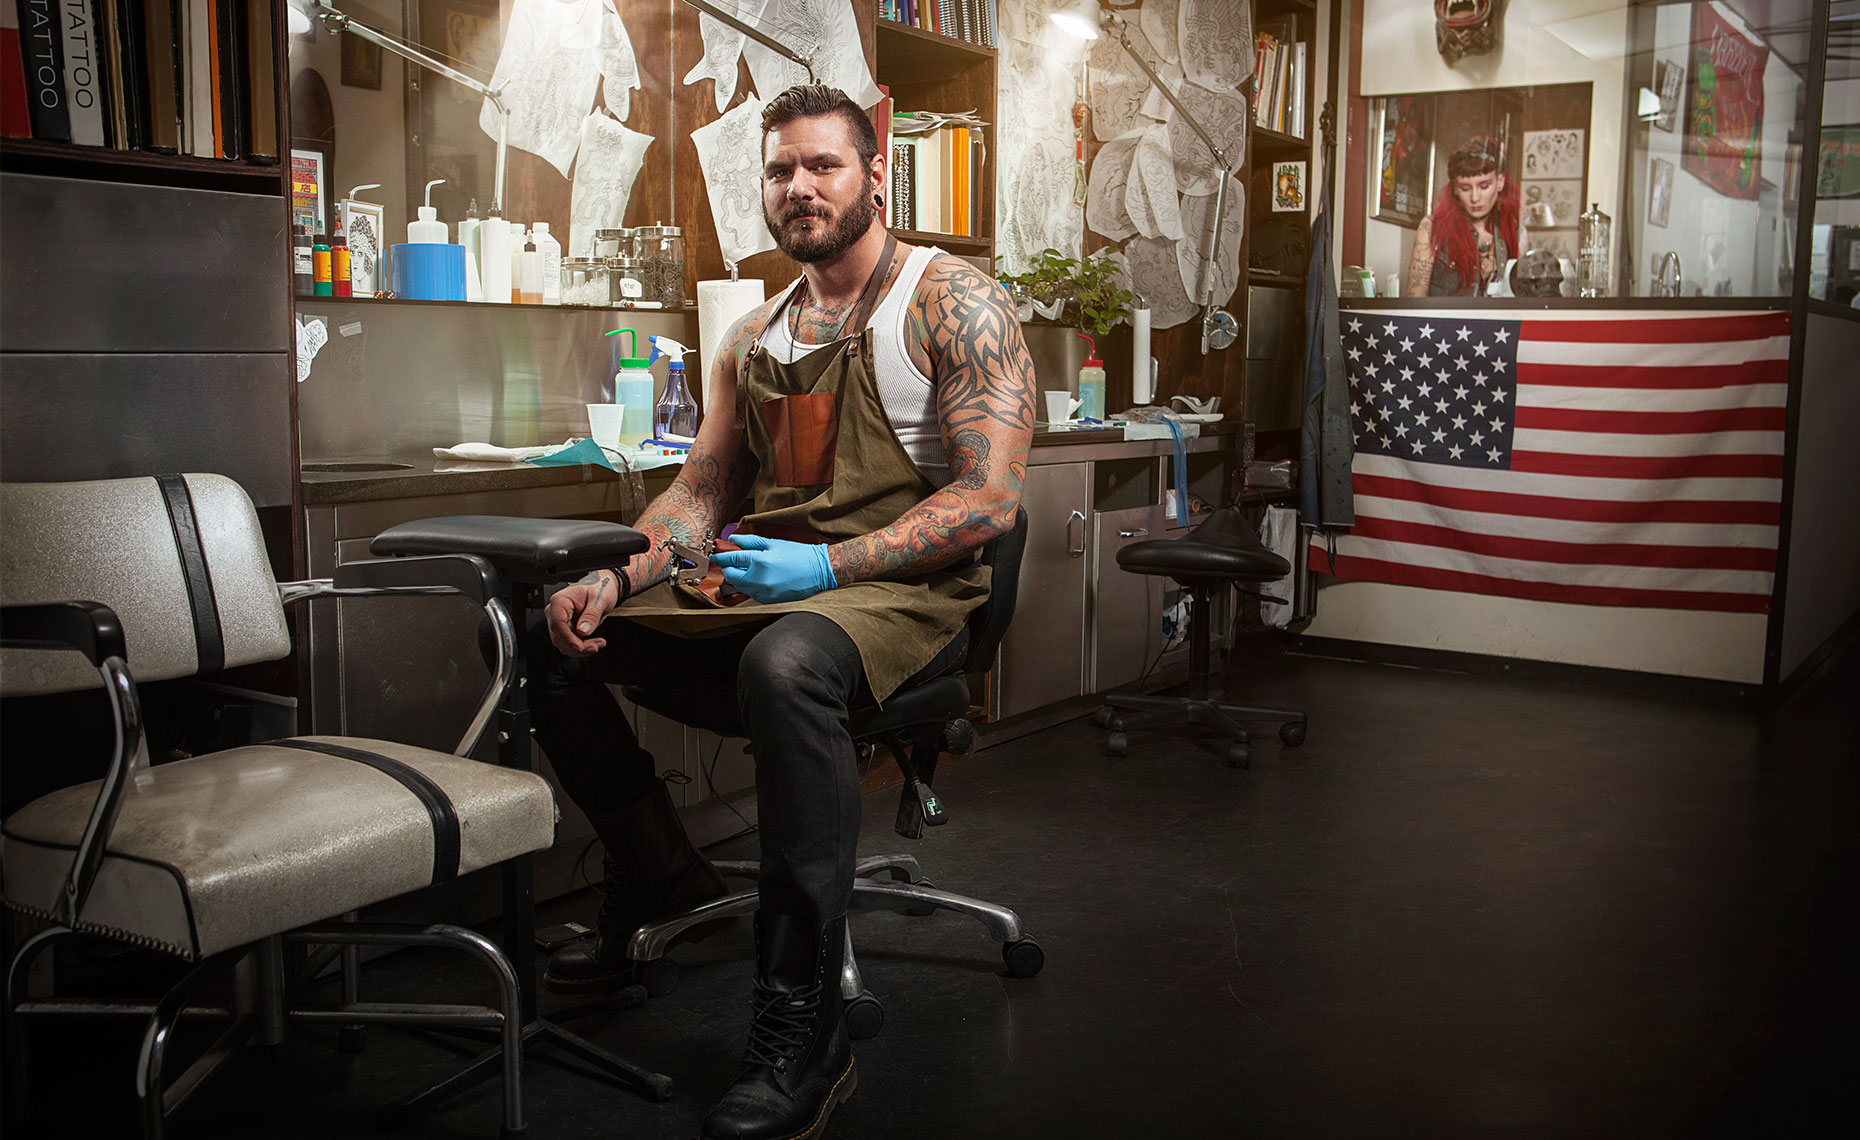 Tattoo Artist in Shop